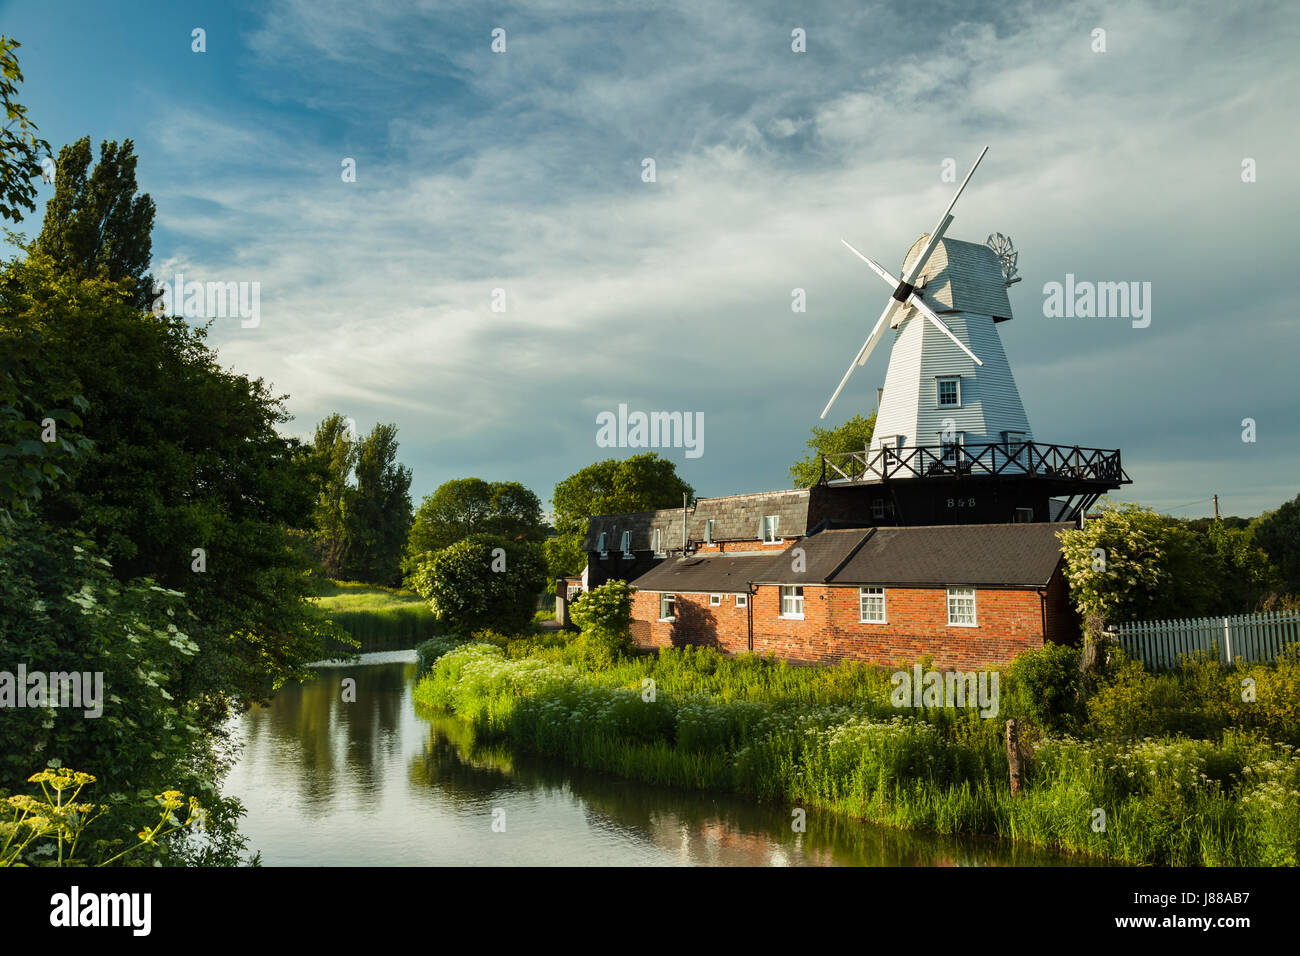 Spring afternoon at Gibbet Mill in Rye, East Sussex, England. - Stock Image